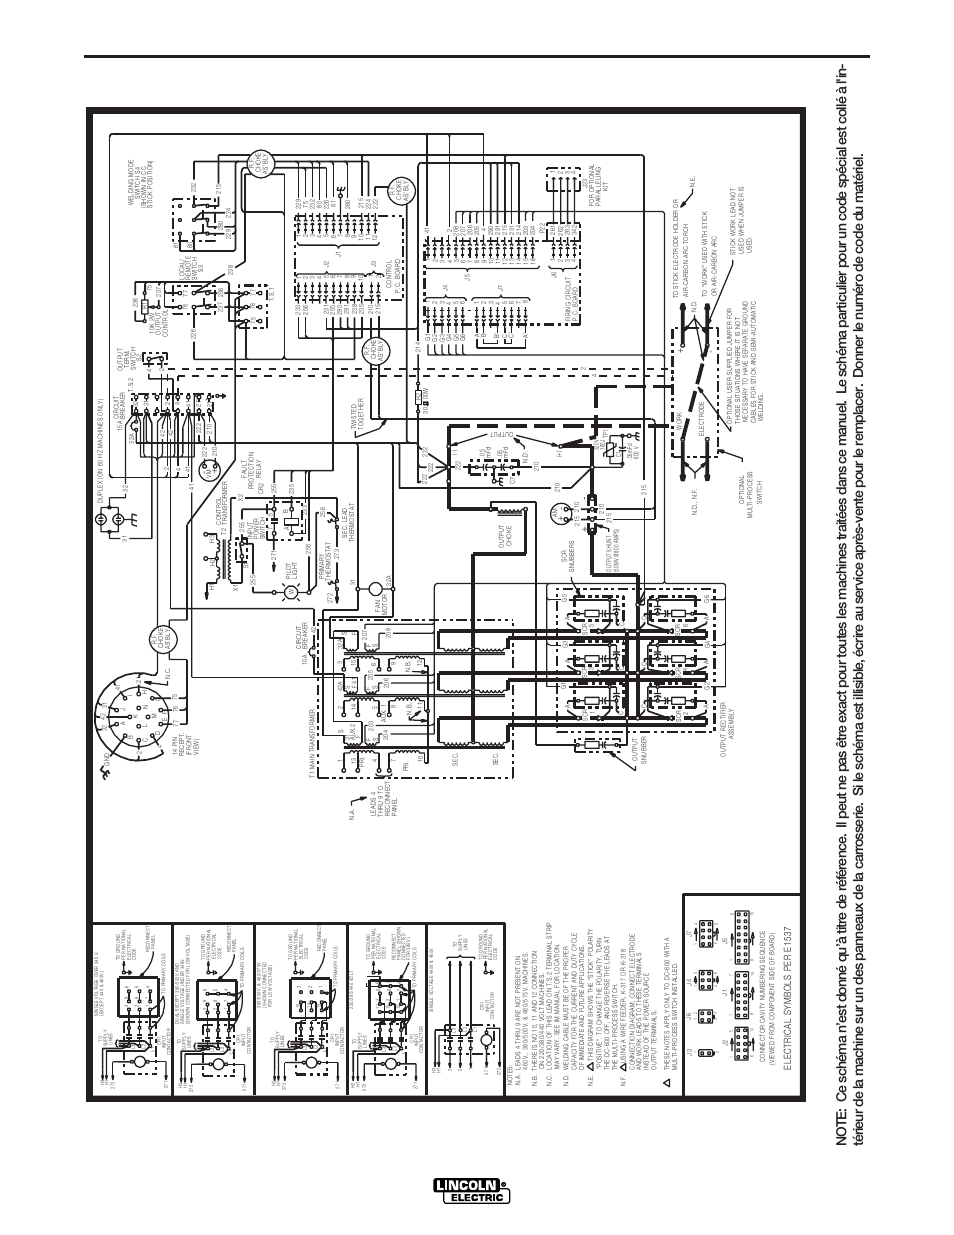 Lincoln Stick Welder Wiring Diagram. Lincoln. Auto Wiring